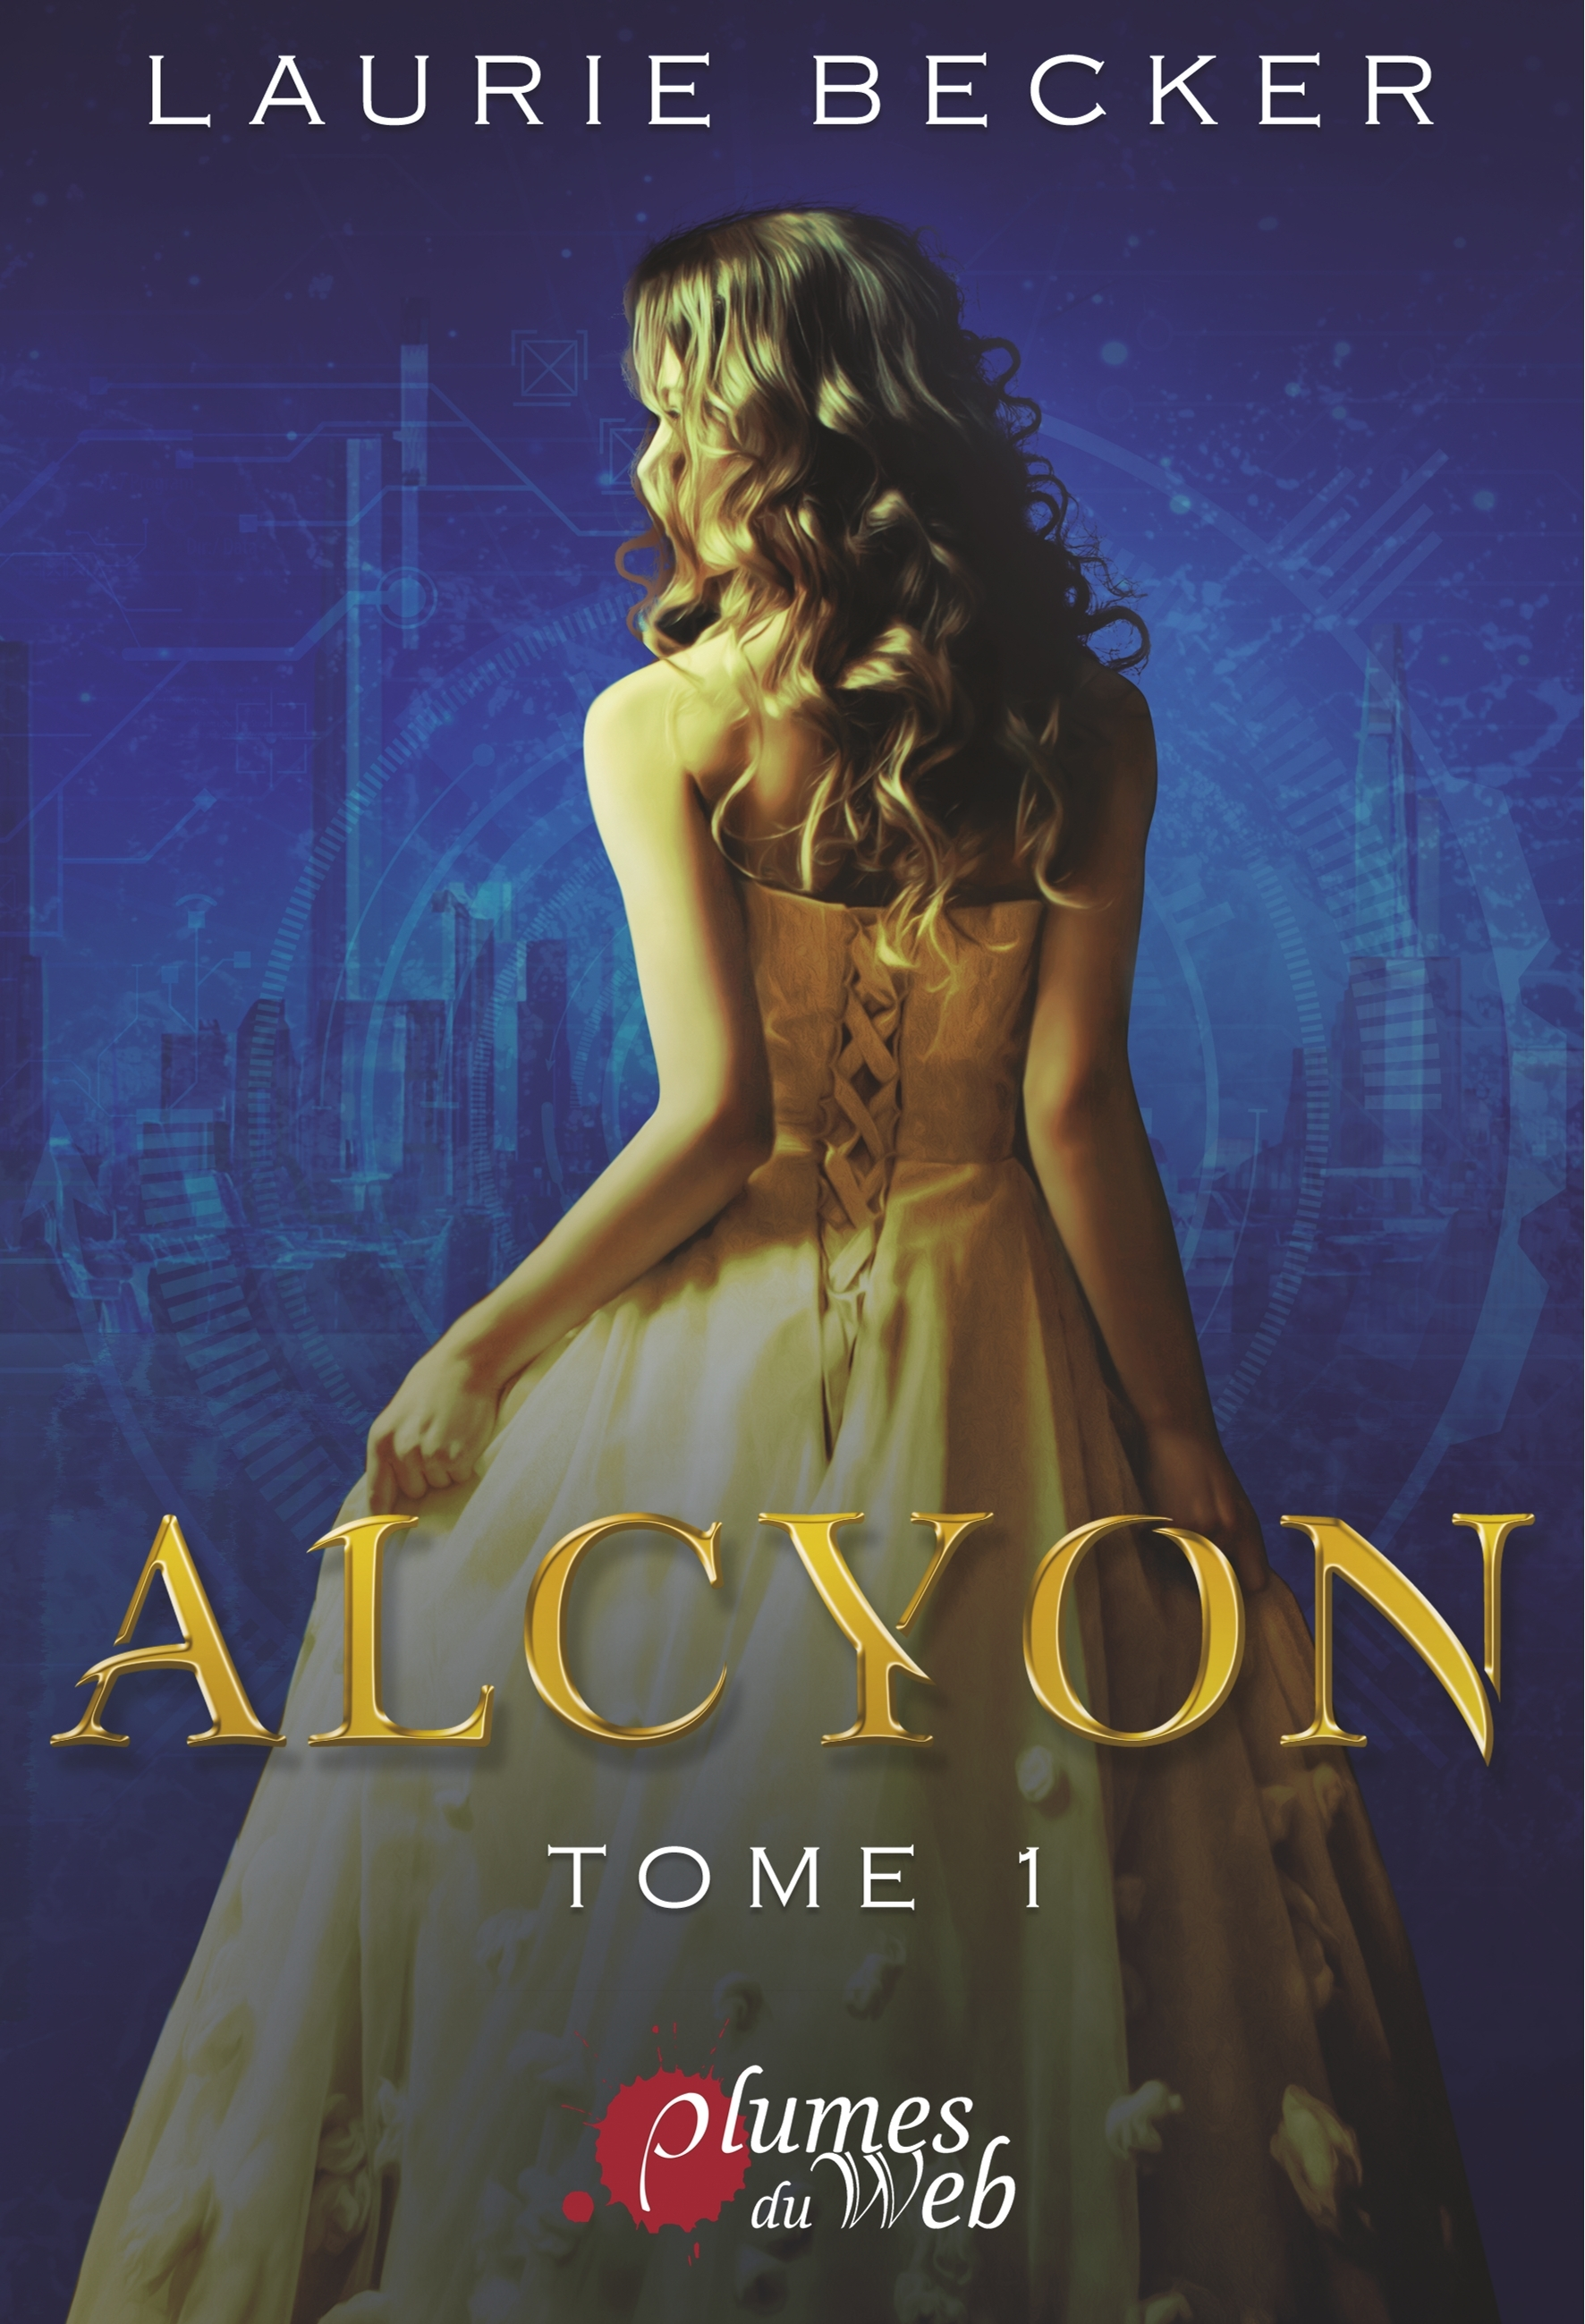 ALCYON TOME 1